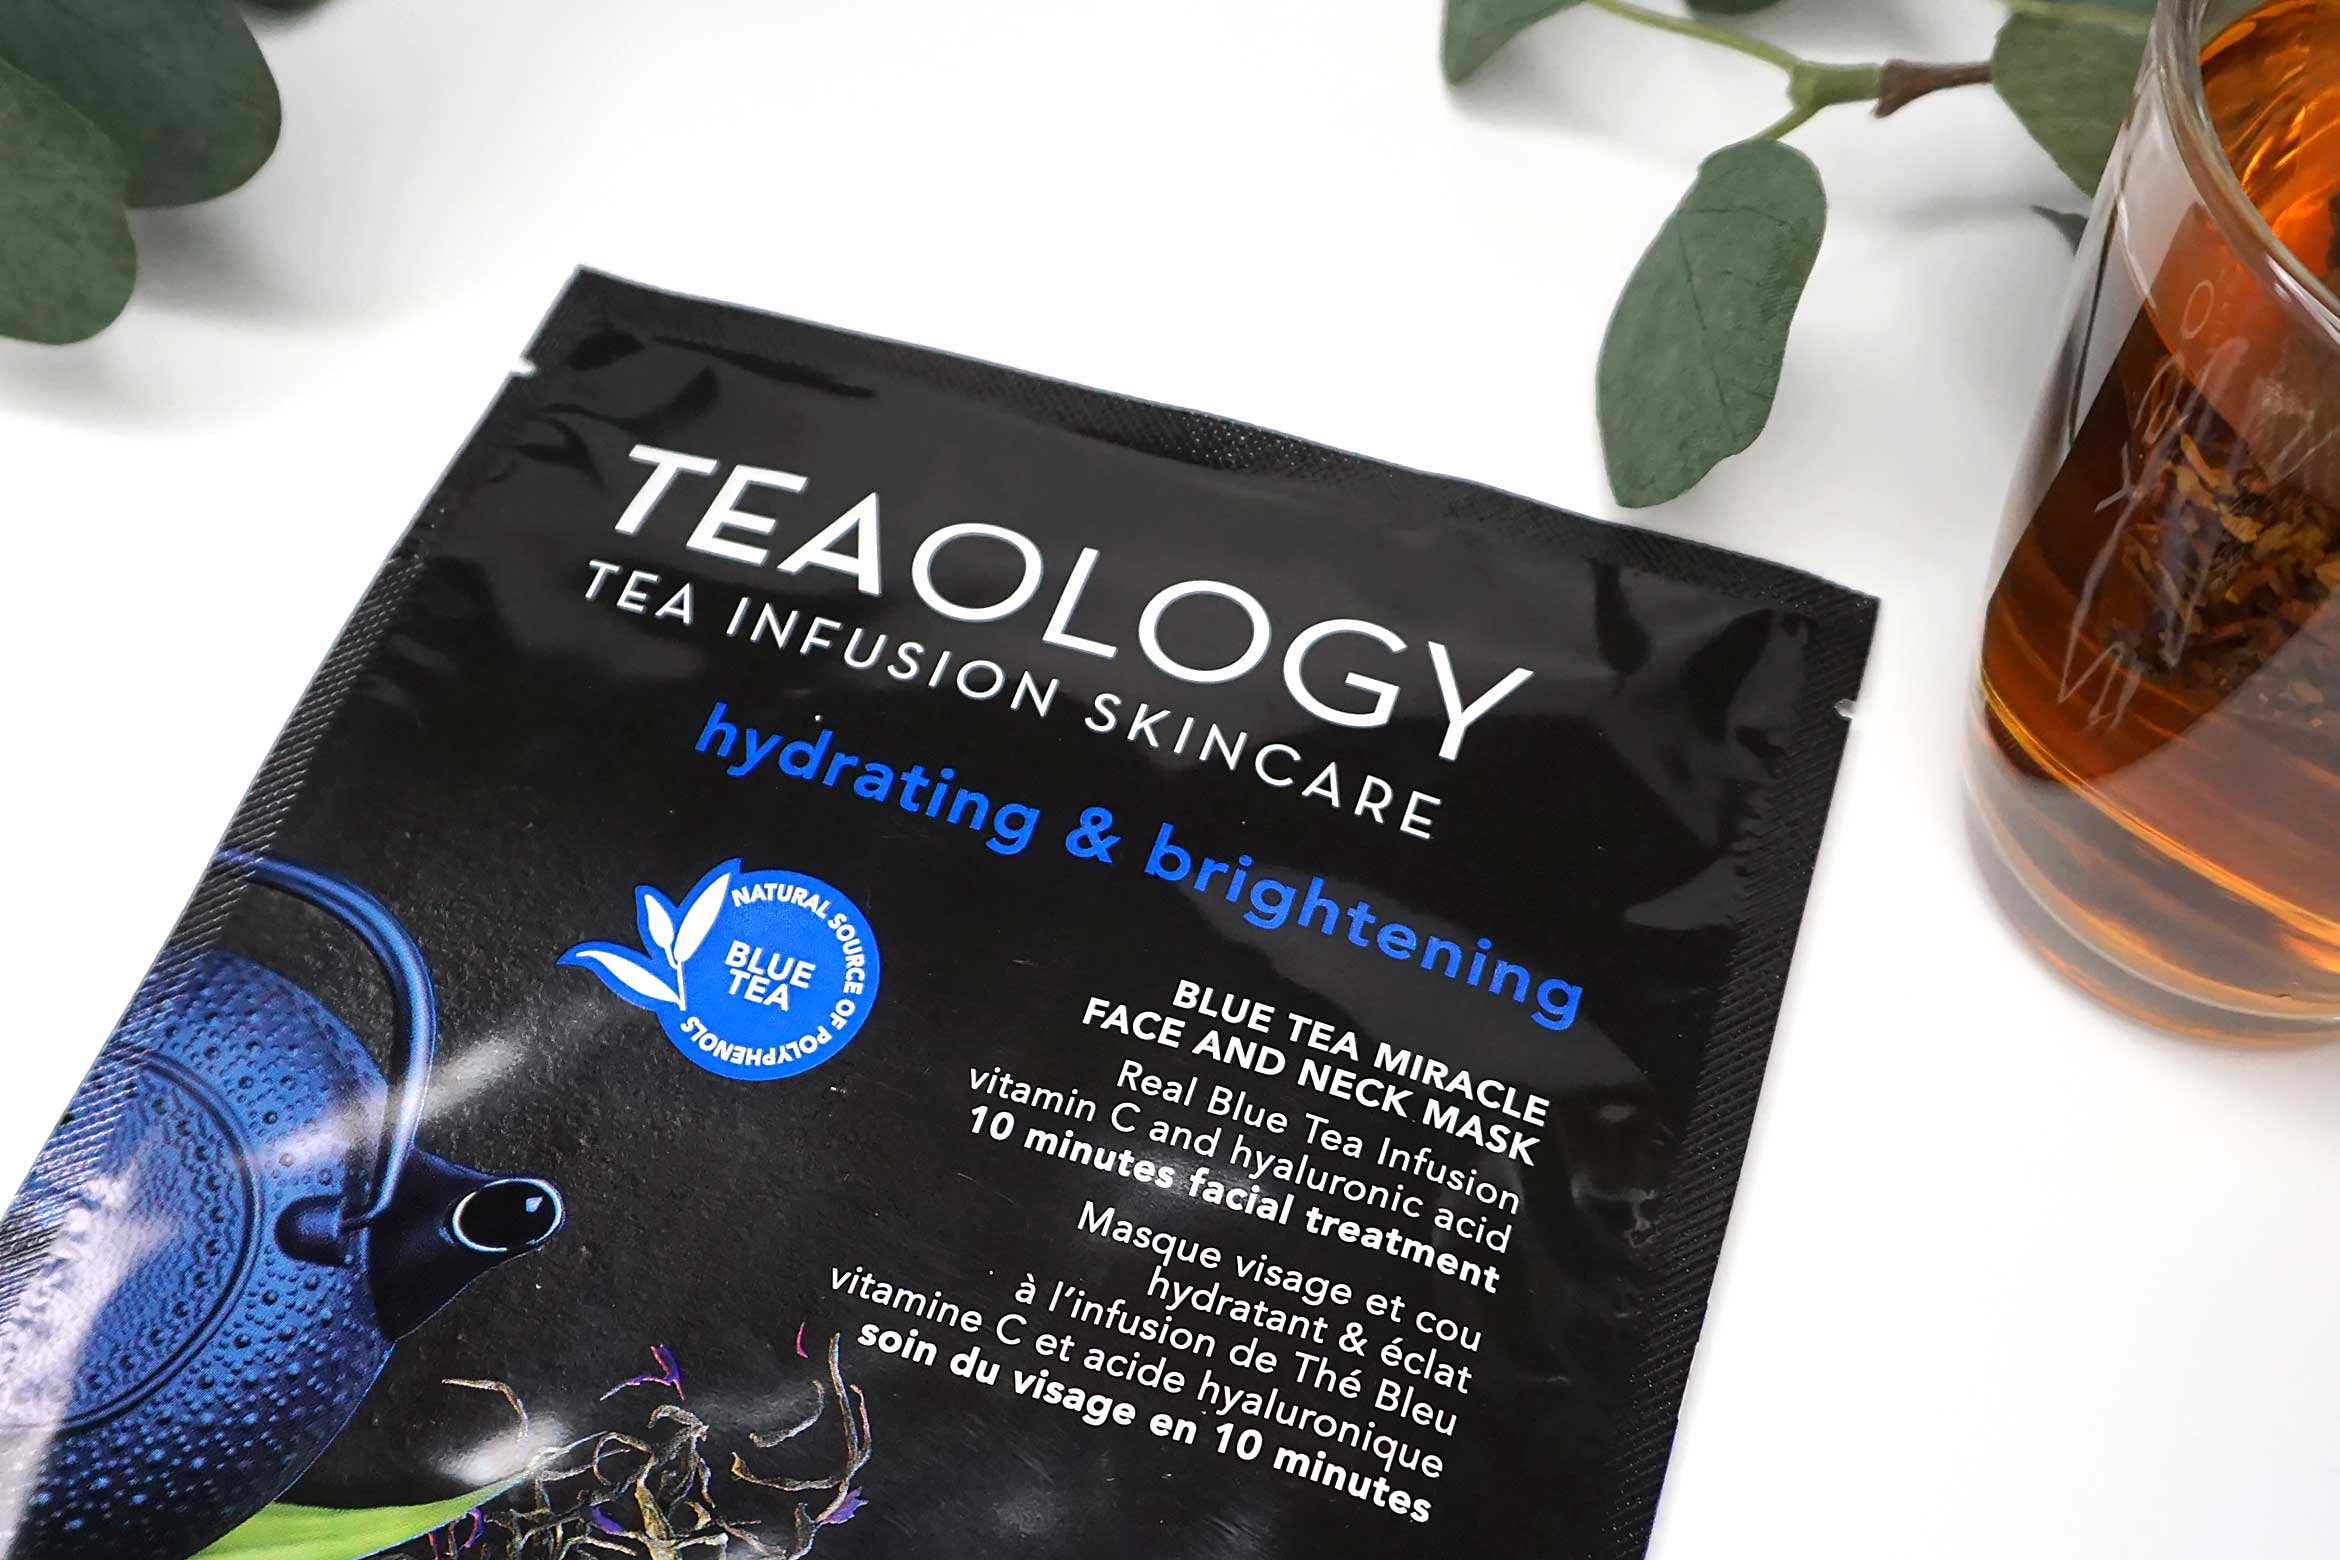 Teaology-Blue-Tea-Miracle-Face-and-Neck-Mask-review-1